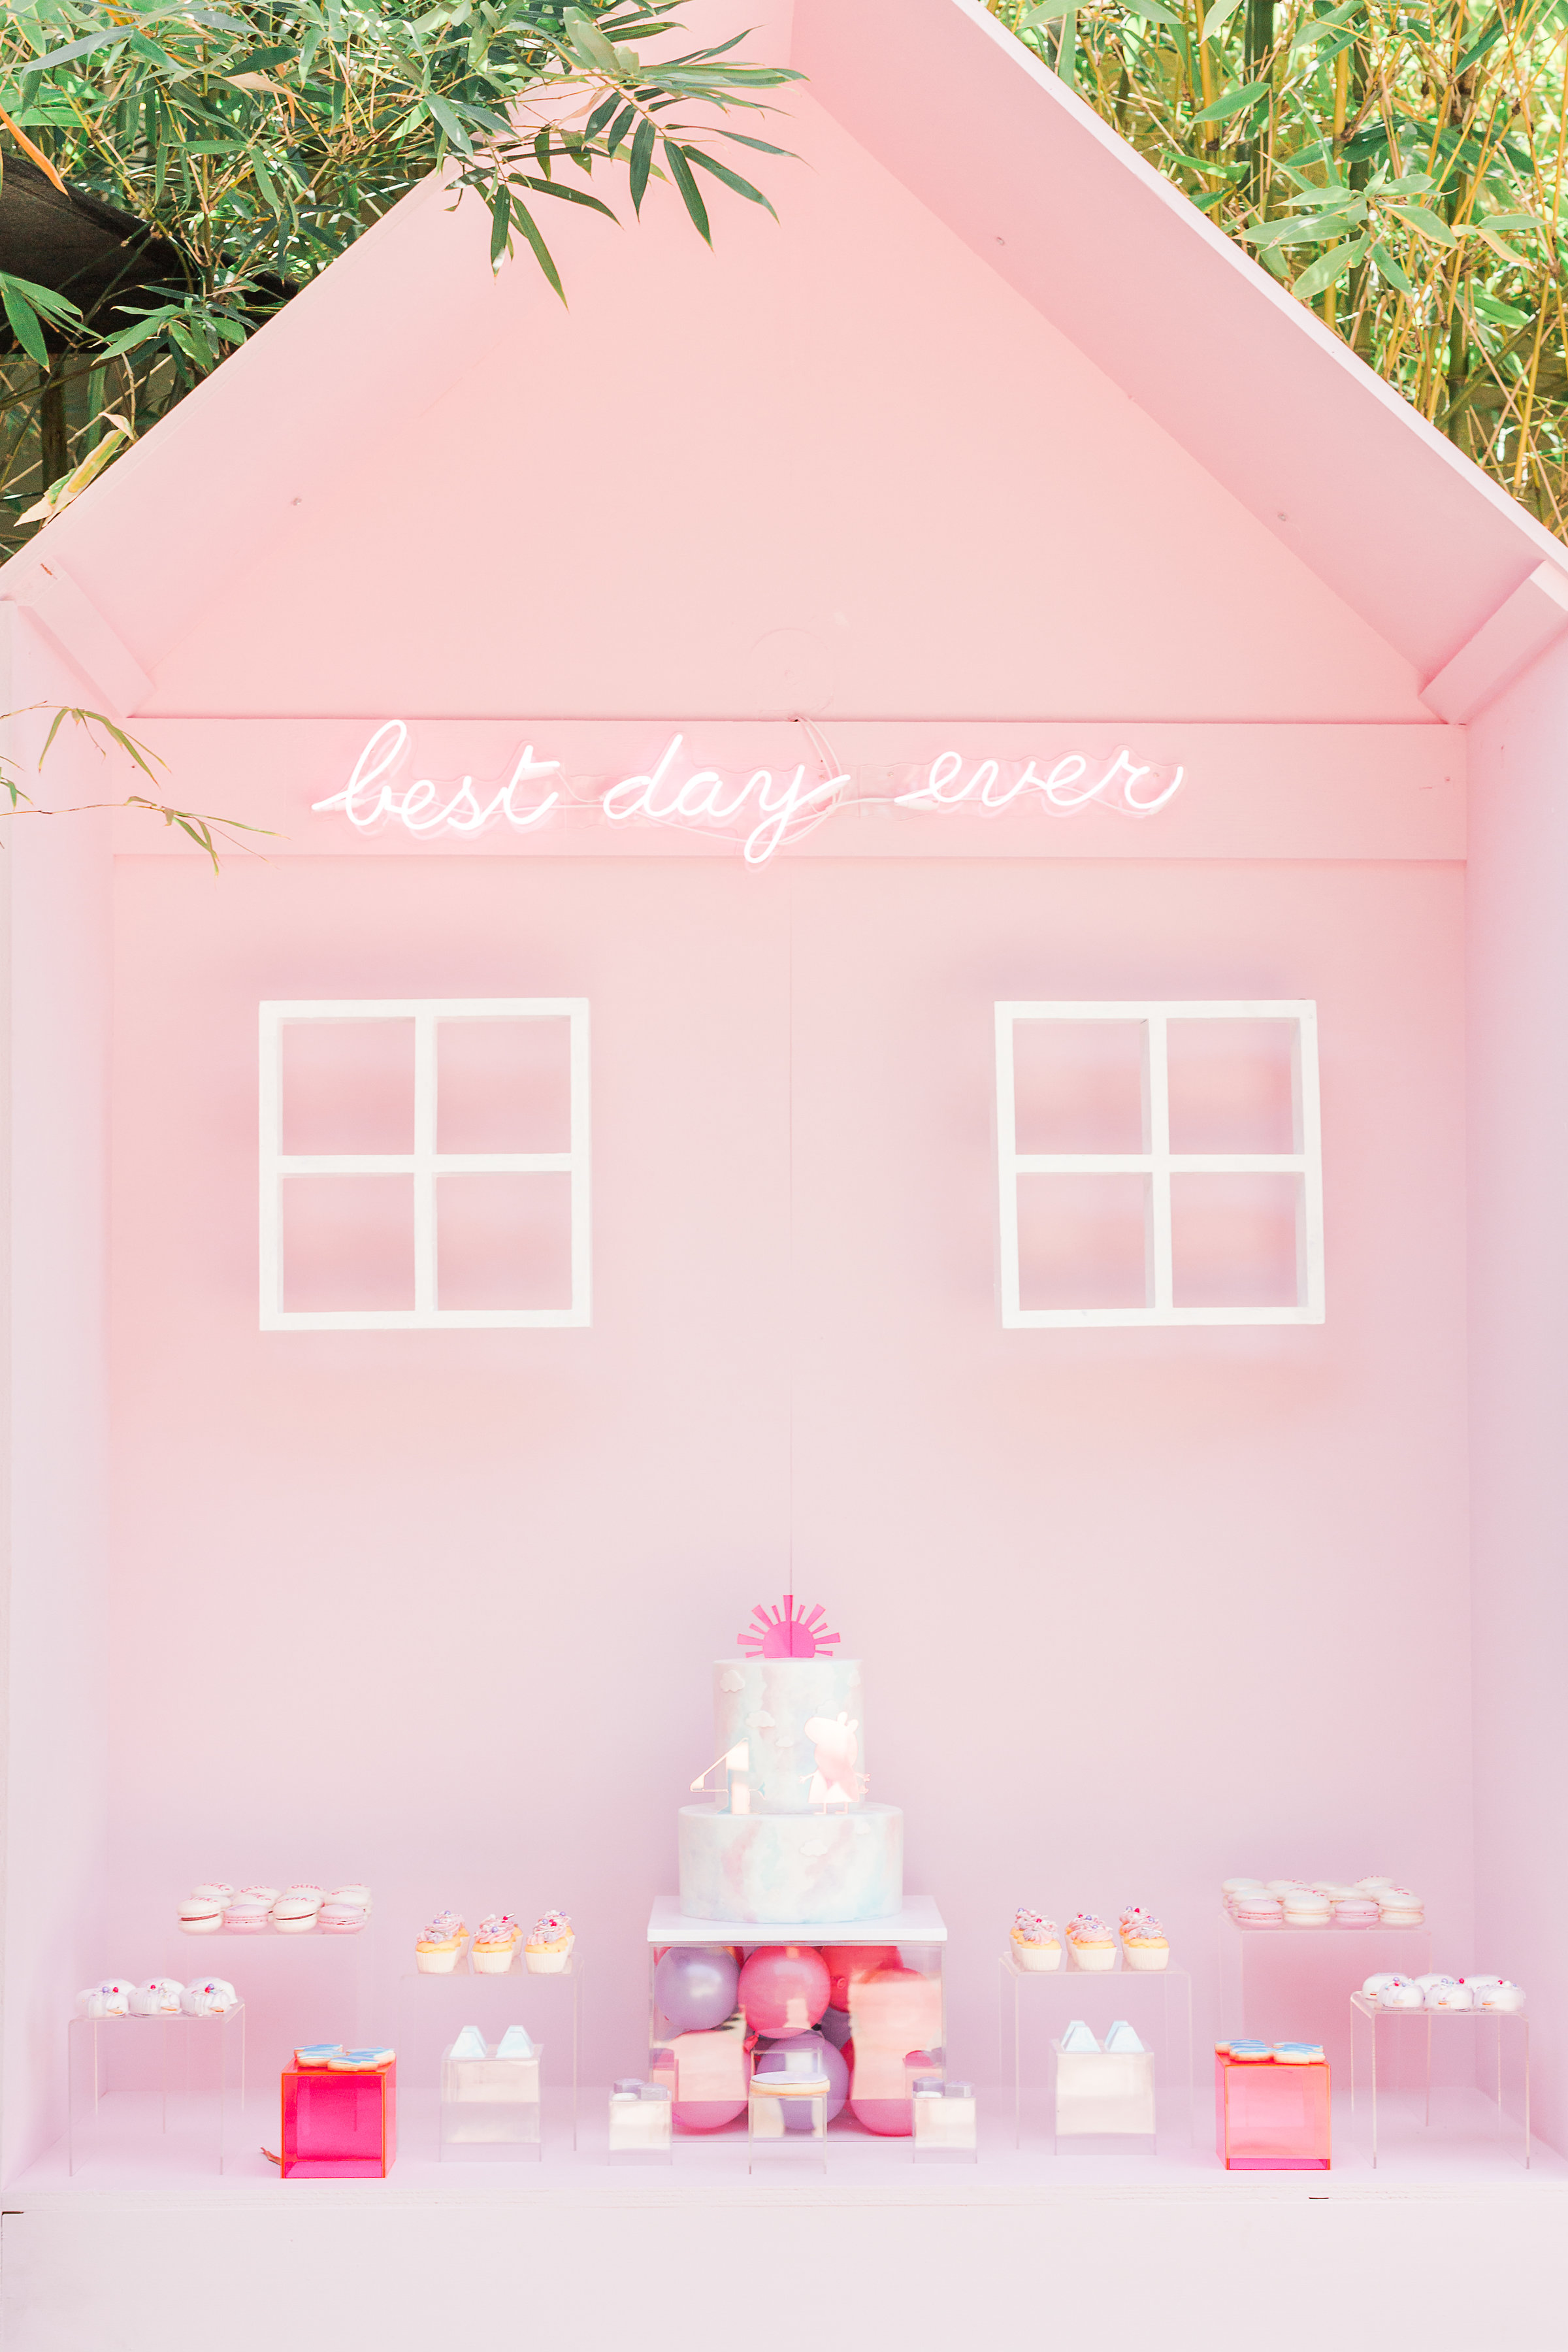 Best Day Ever(A Magritte Peppa Pig) -